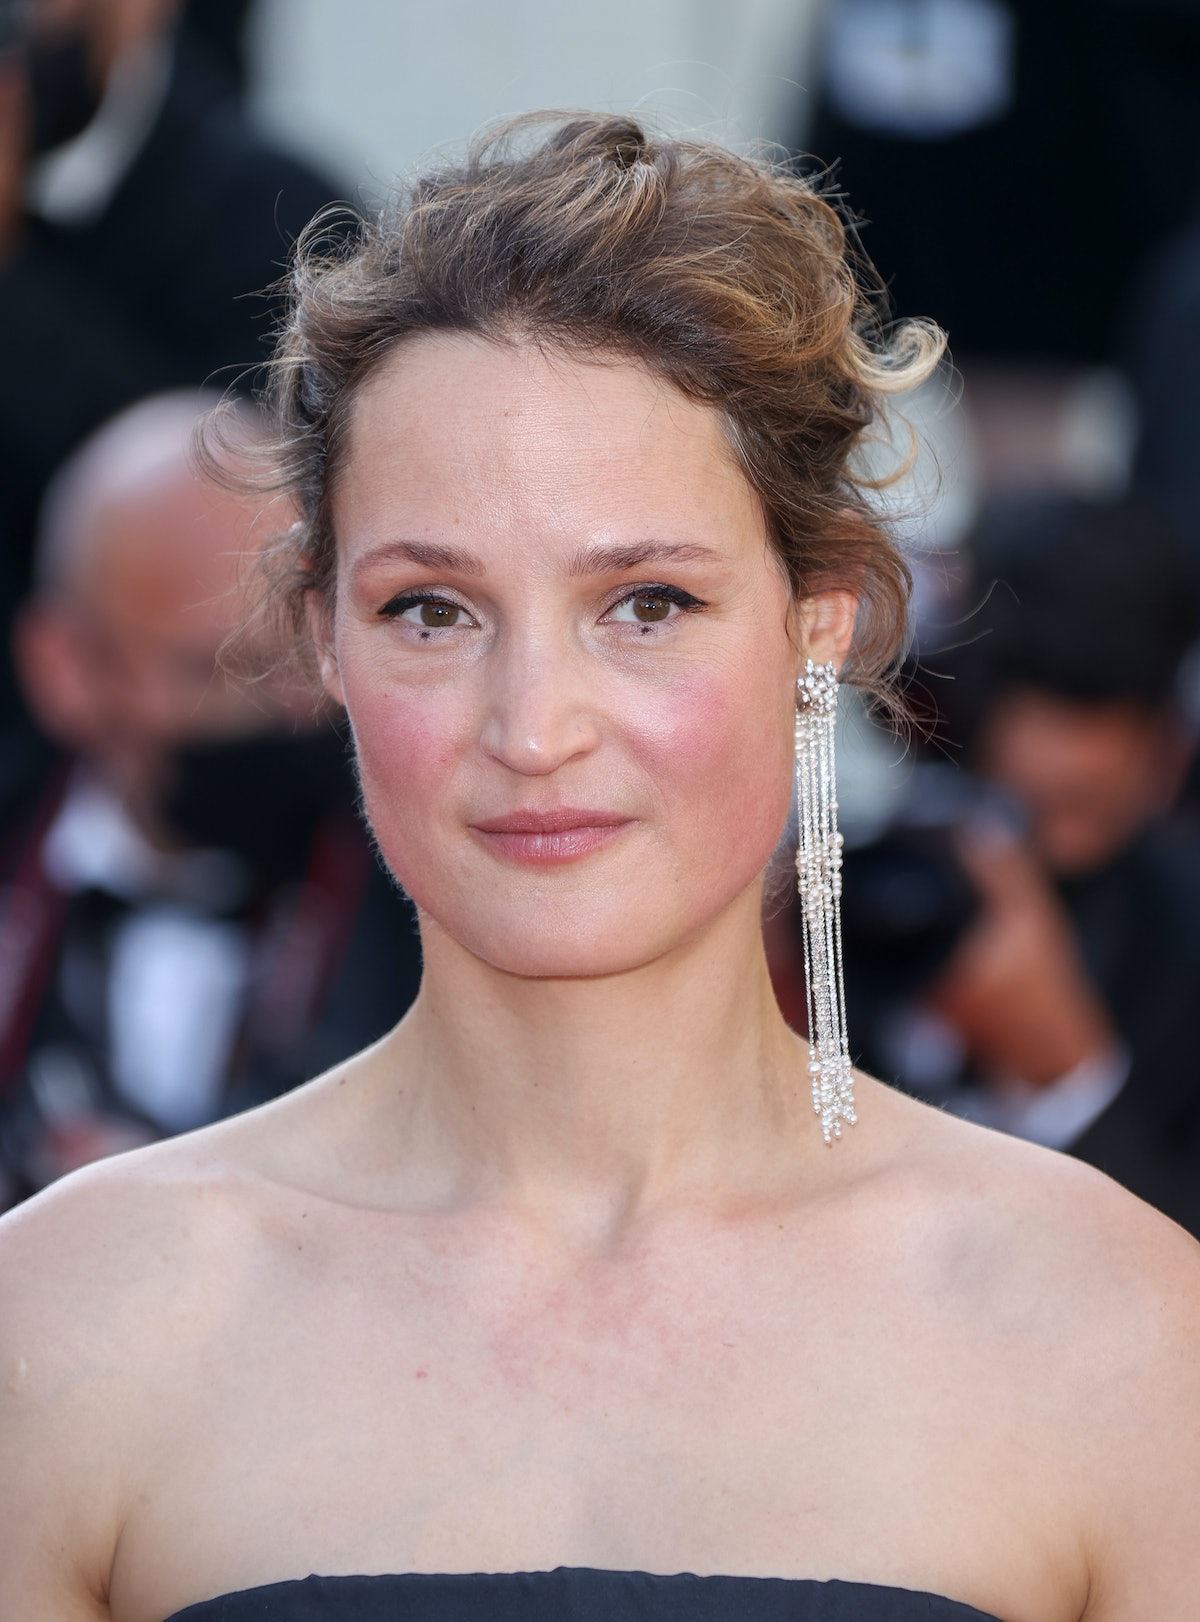 """CANNES, FRANCE - JULY 14: Vicky Krieps attends the """"A Felesegam Tortenete/The Story Of My Wife"""" screening during the 74th annual Cannes Film Festival on July 14, 2021 in Cannes, France. (Photo by Mike Marsland/WireImage)"""